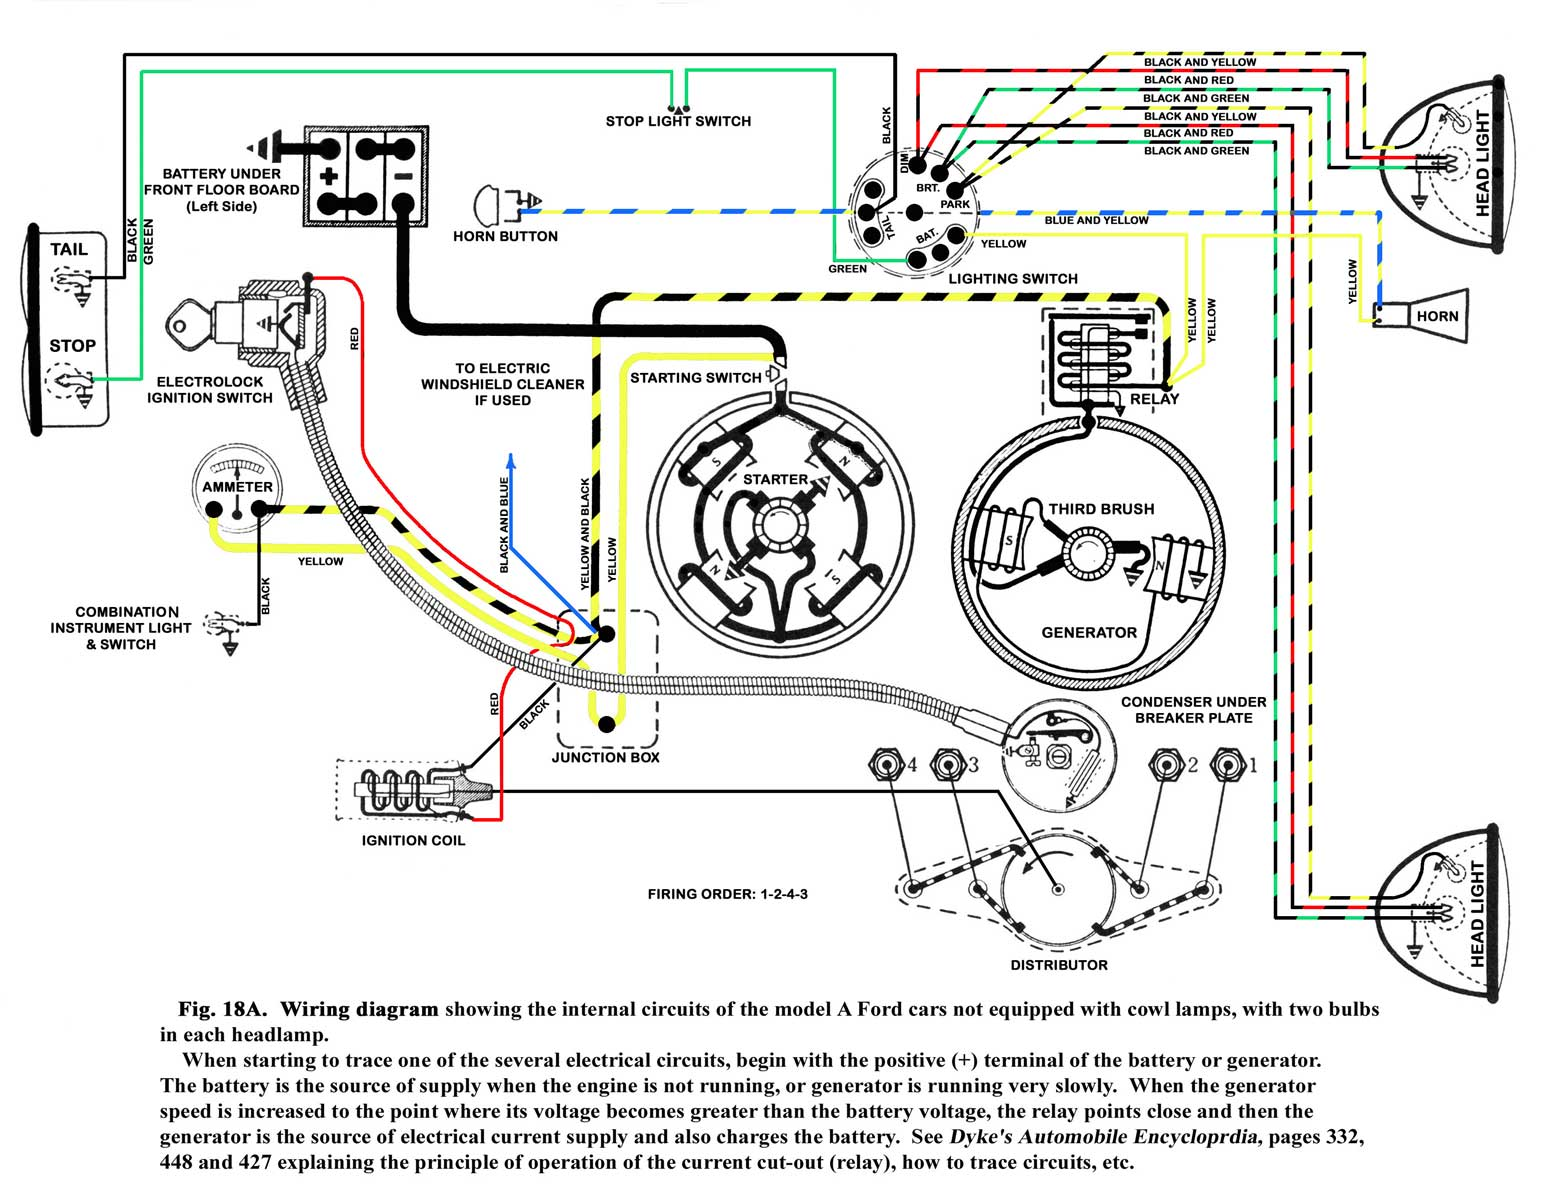 medium resolution of ford wiring harness diagrams wiring diagram detailed ford 3000 tractor wiring harness diagram ford wiring harness diagrams